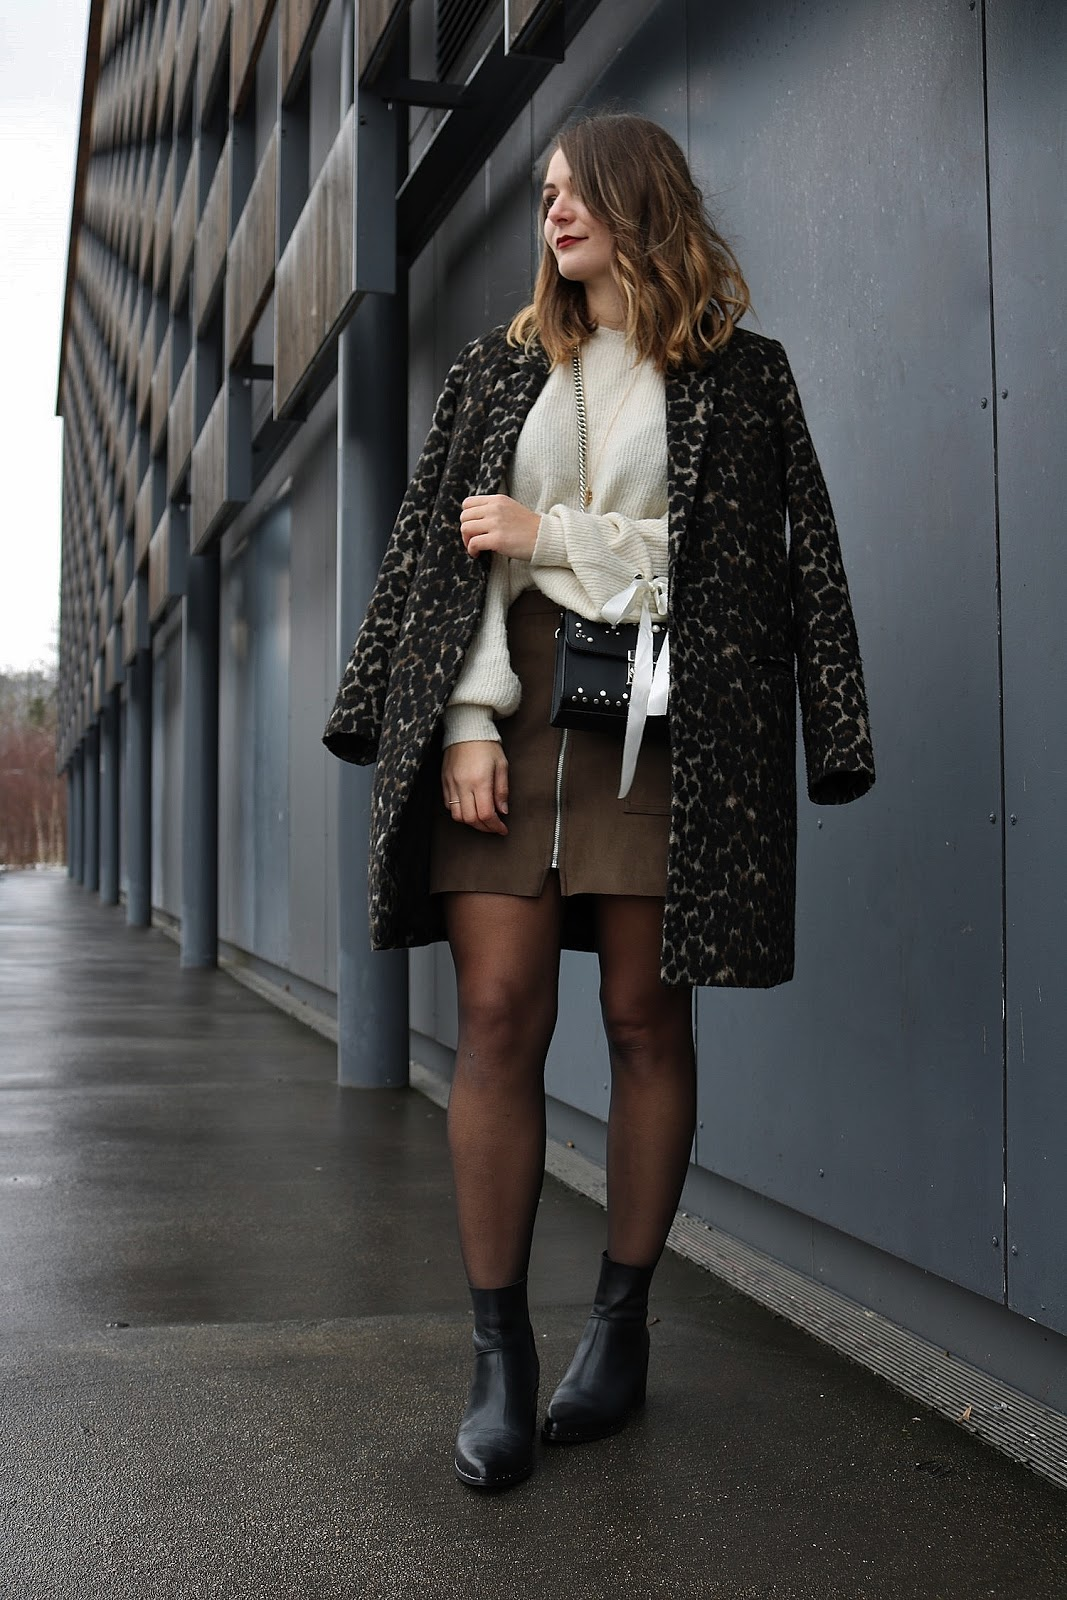 pauline-dress-blog-mode-deco-lifestyle-besancon-frac-cite-des-arts-jupe-kaki-outfit-look-tenue-du-jour-fille-manteau-leopard-leo-zip-kaki-pull-lace-up-sac-noir-perles